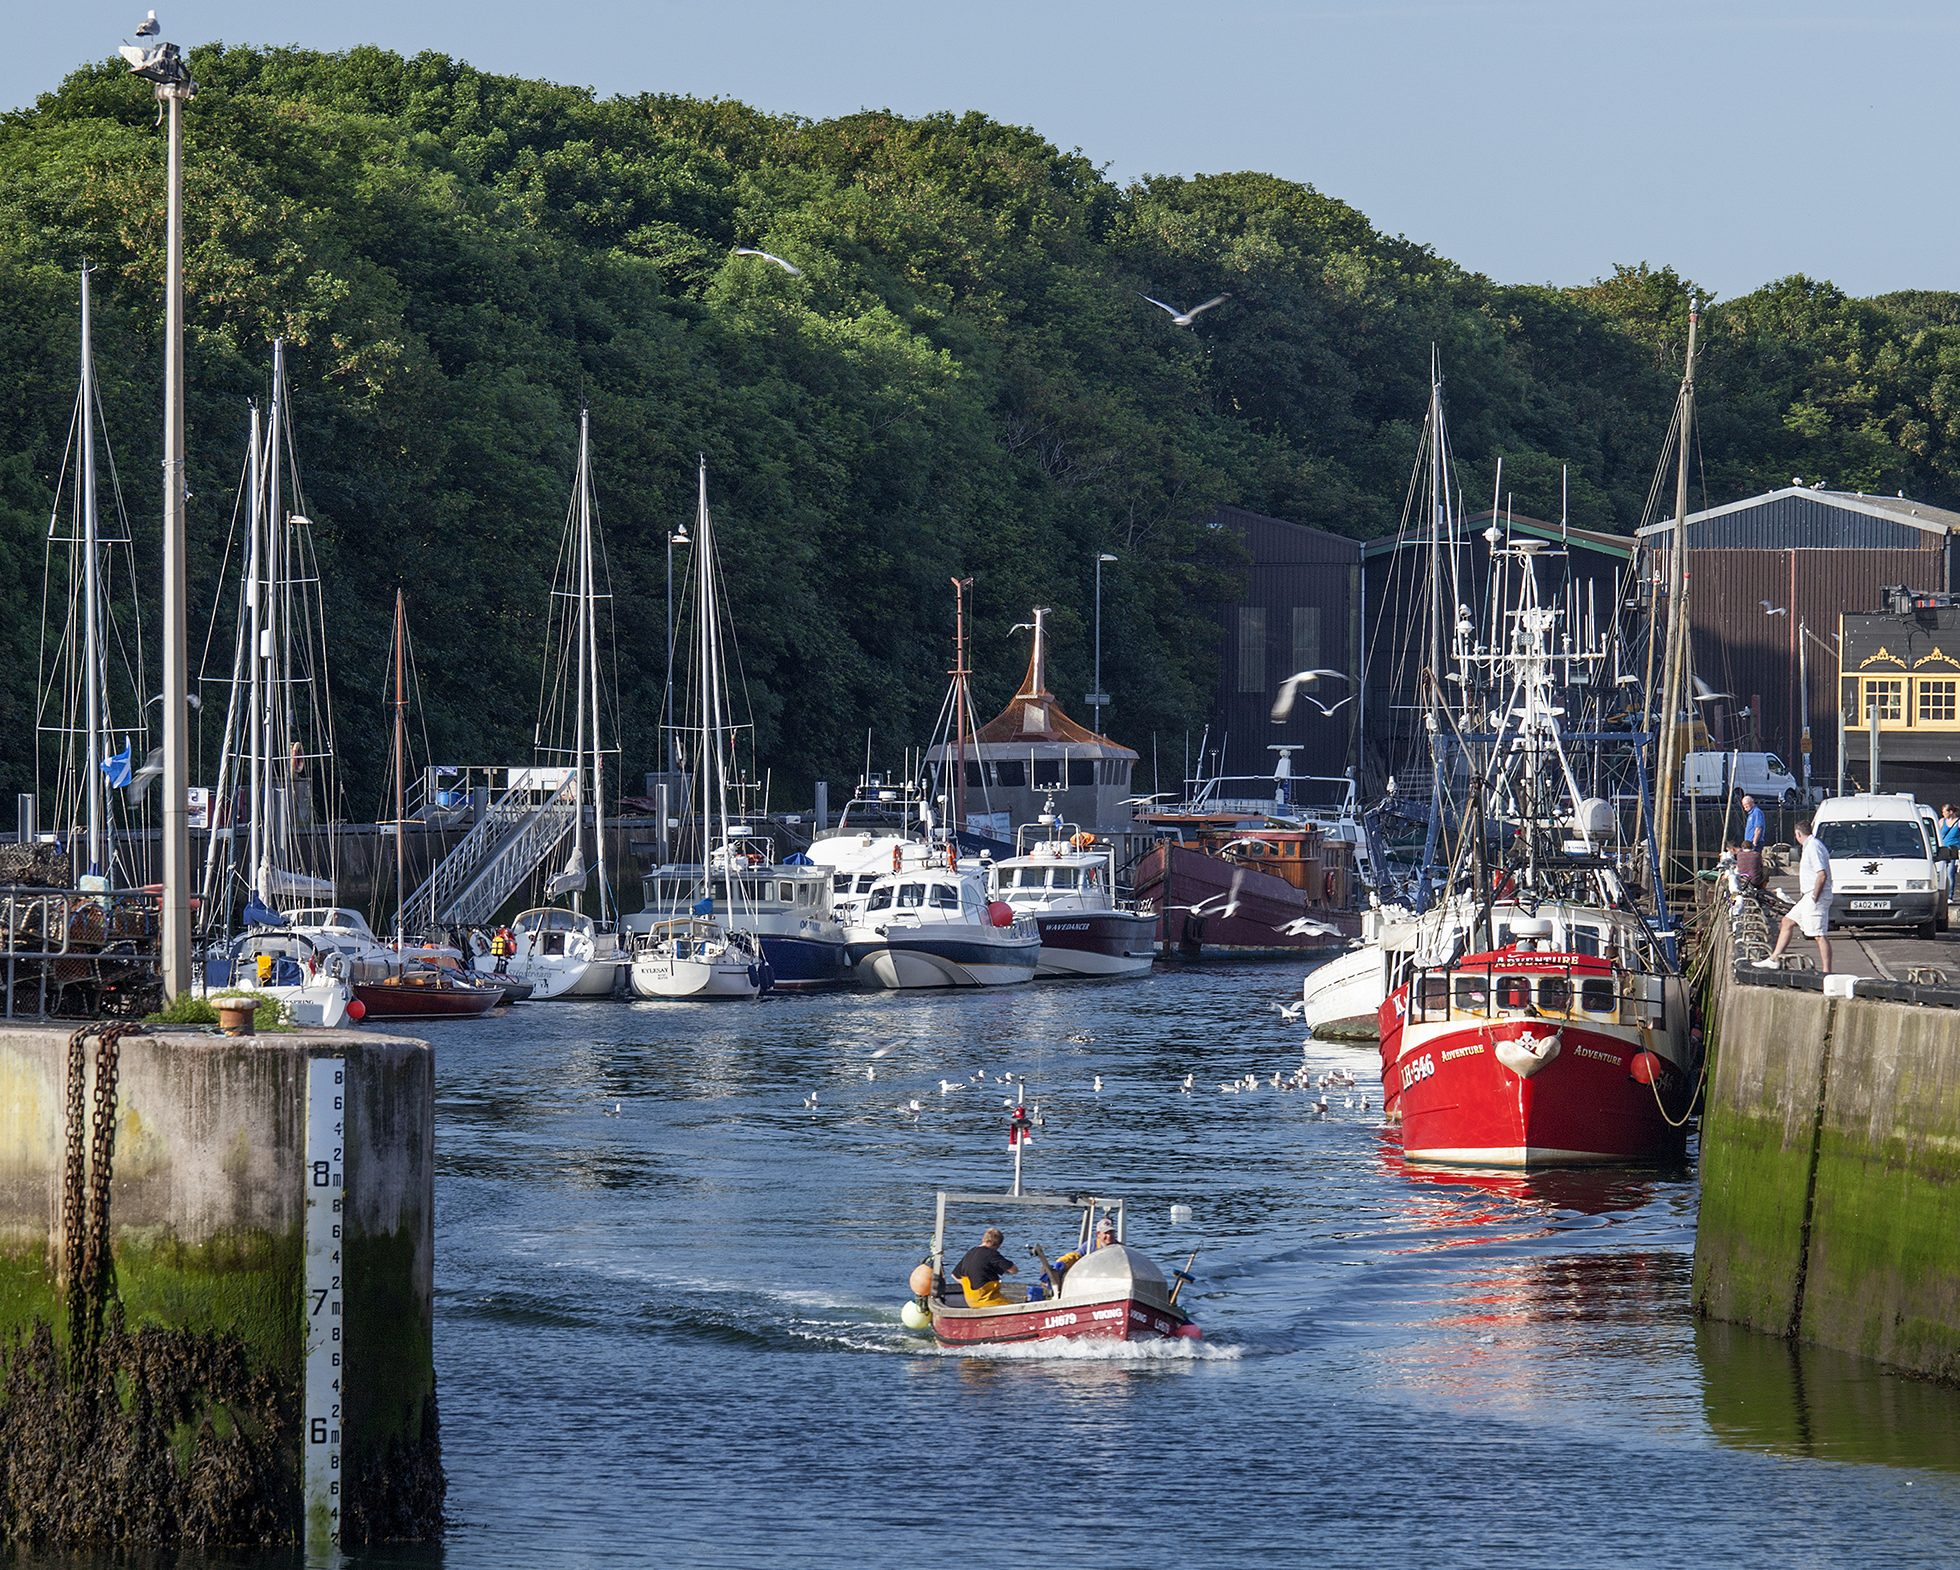 Planning permission granted as Applied Engineering Design takes on role in regeneration of Eyemouth boat yard